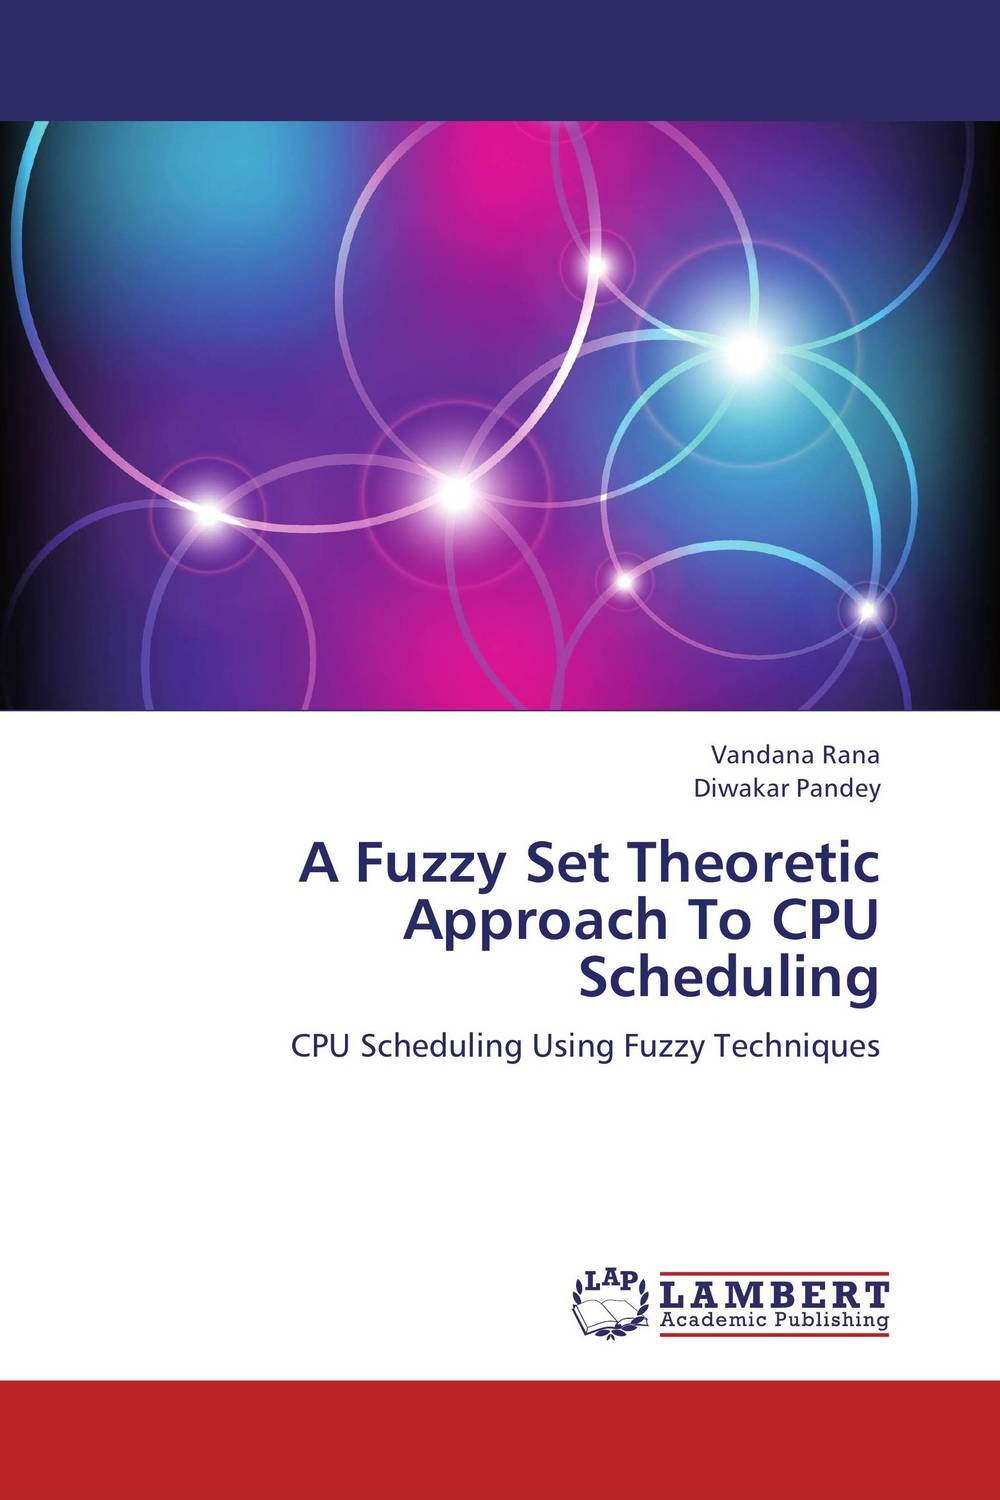 A Fuzzy Set Theoretic Approach To CPU Scheduling intelligent scheduling of parallel harware tests